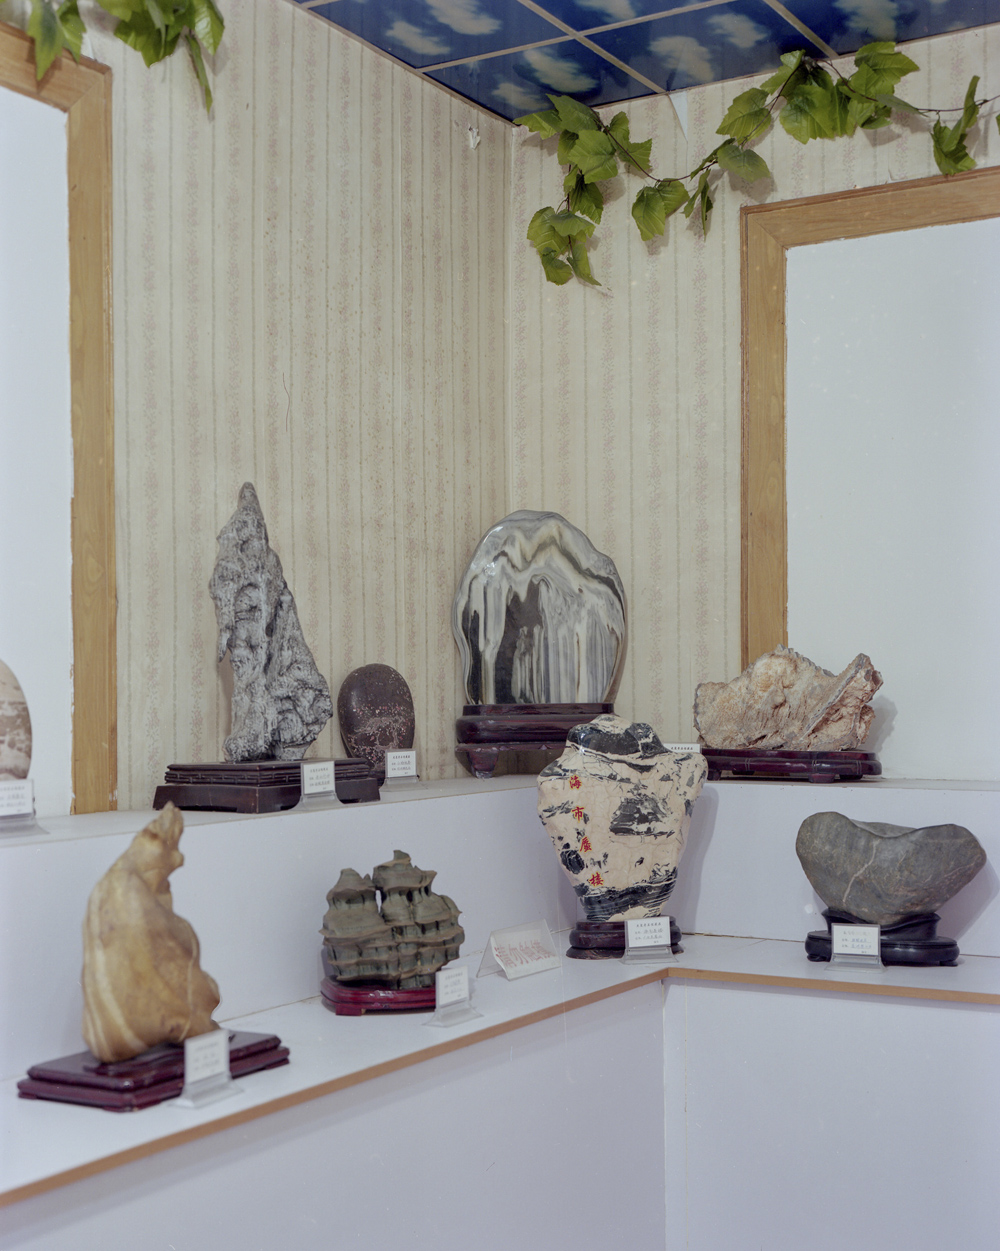 An exhibition showing stones collected from the forest park in Dazhai Village, Shanxi province, April 19, 2021. Shi Yangkun/Sixth Tone